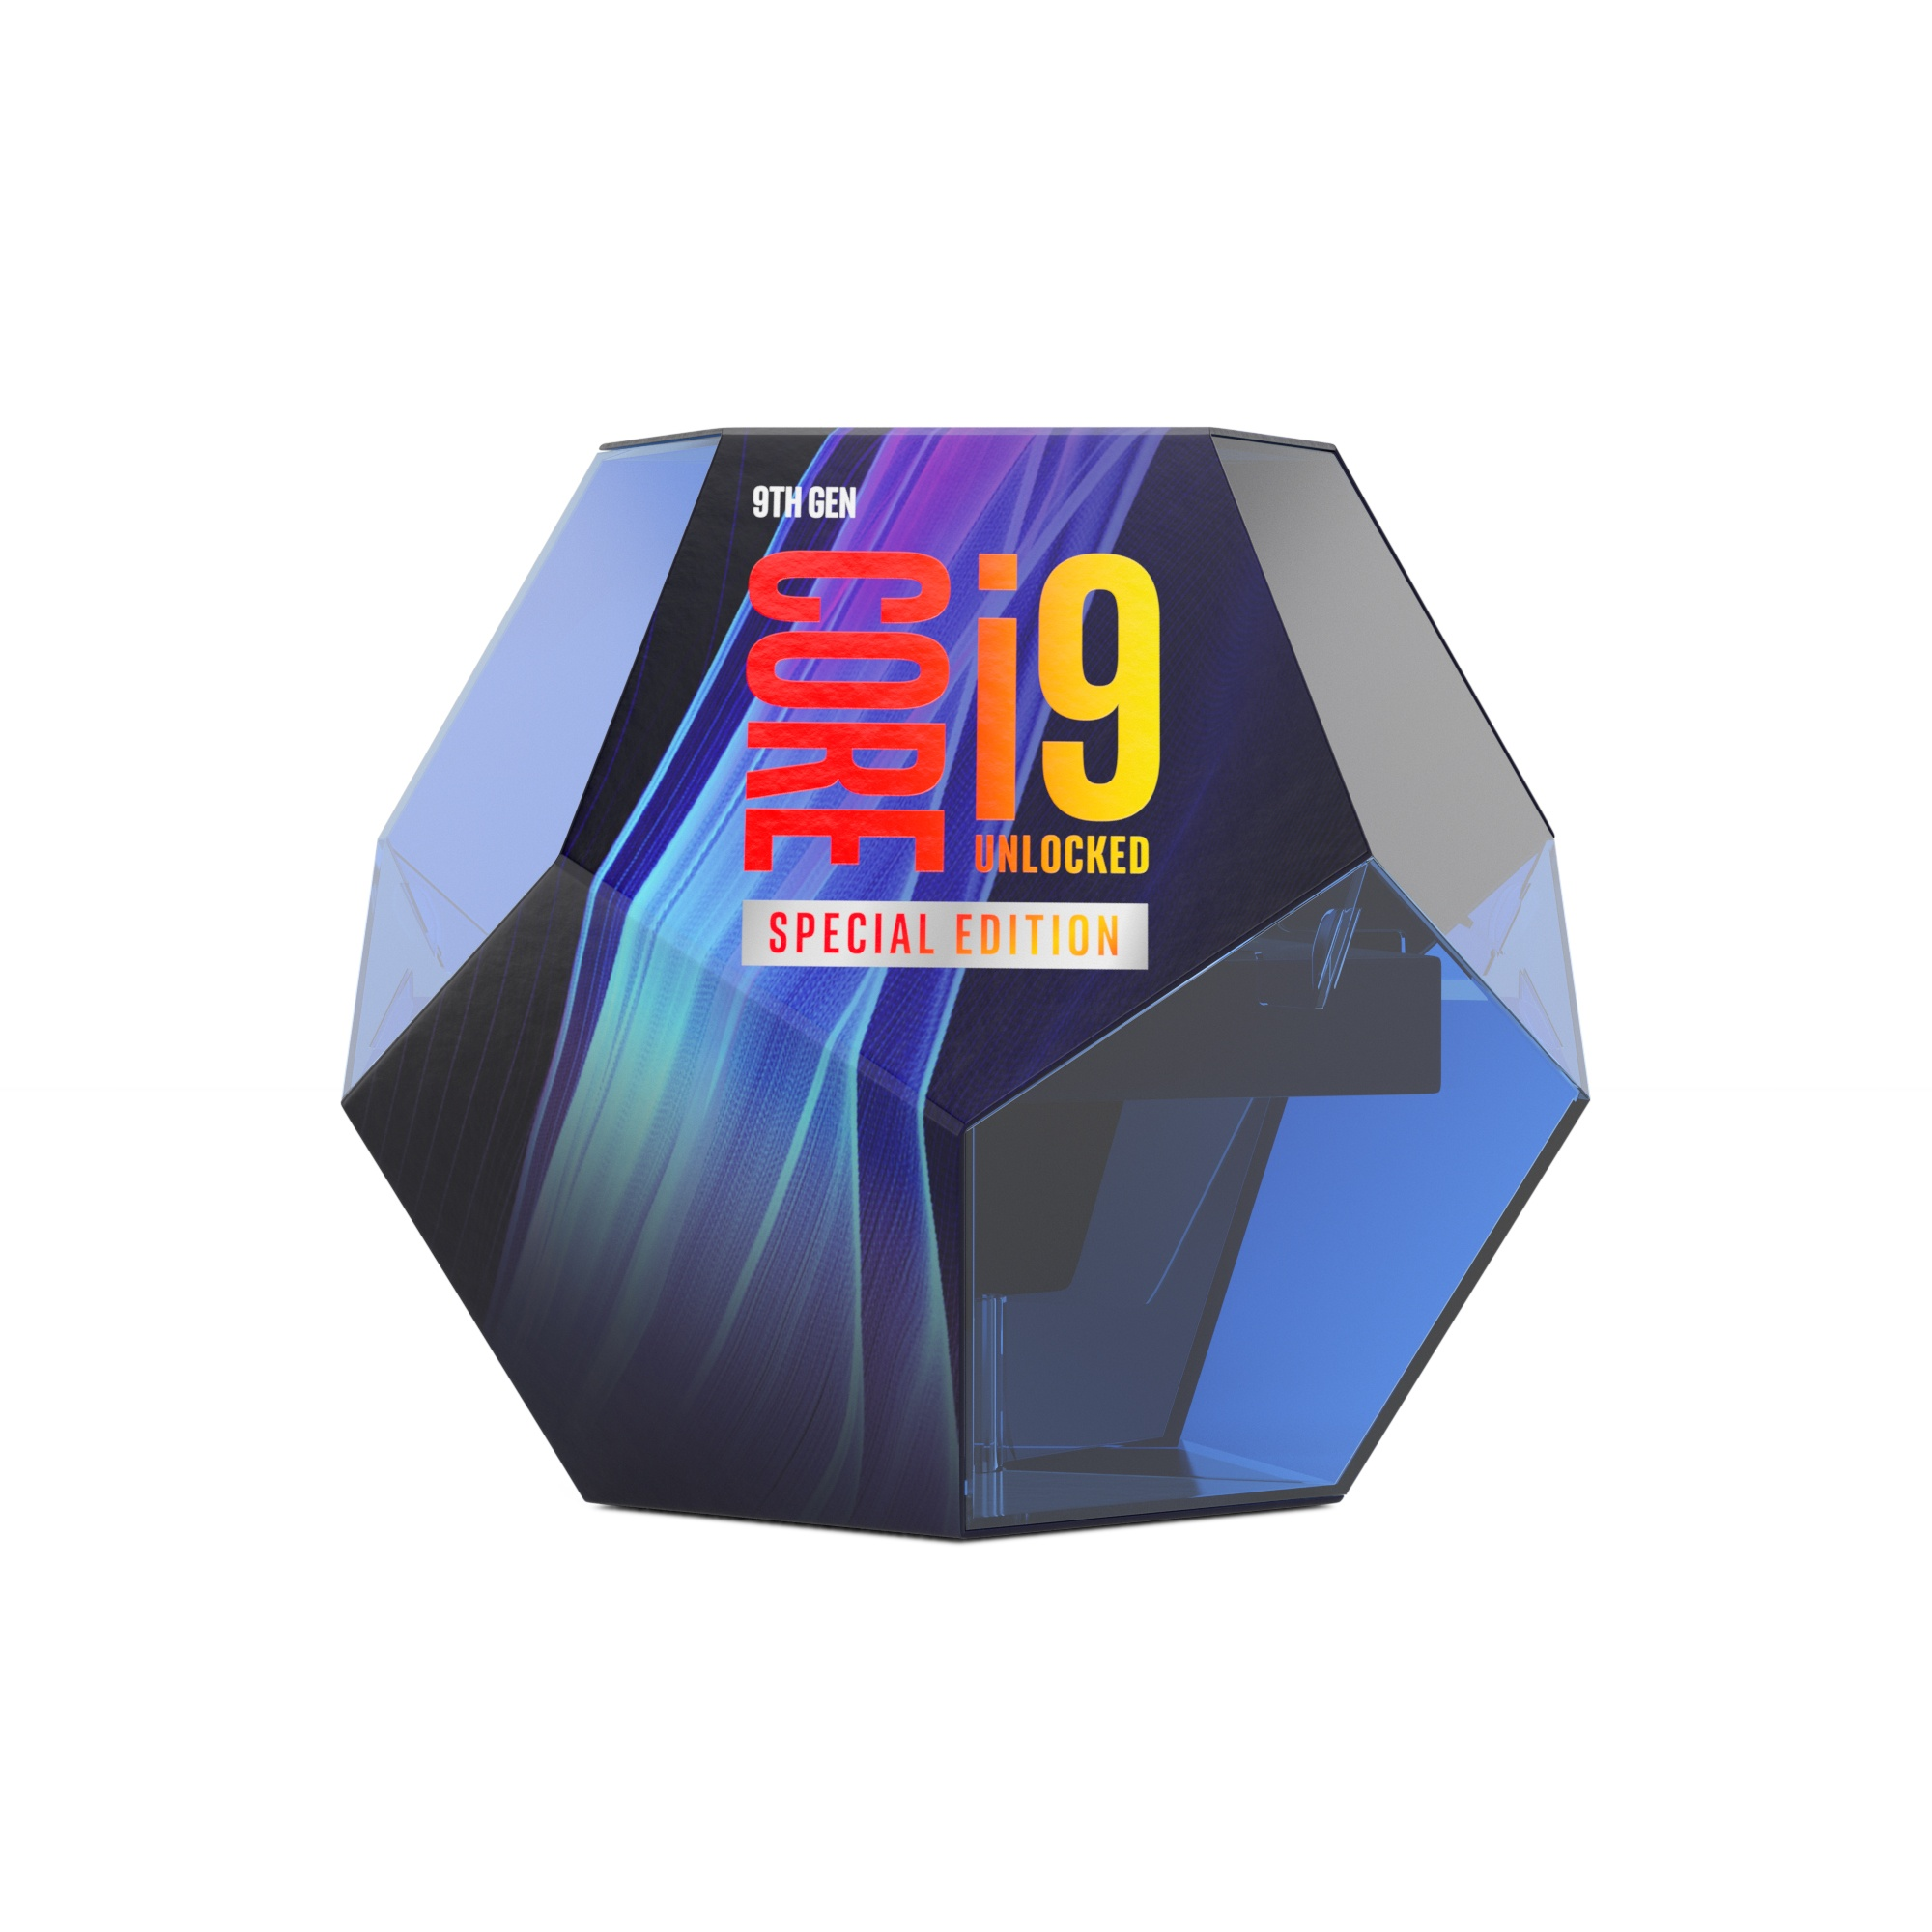 191029_9th Gen Intel Core i9-9900KS Special Edition Processor Available Oct 30th_Contents_2